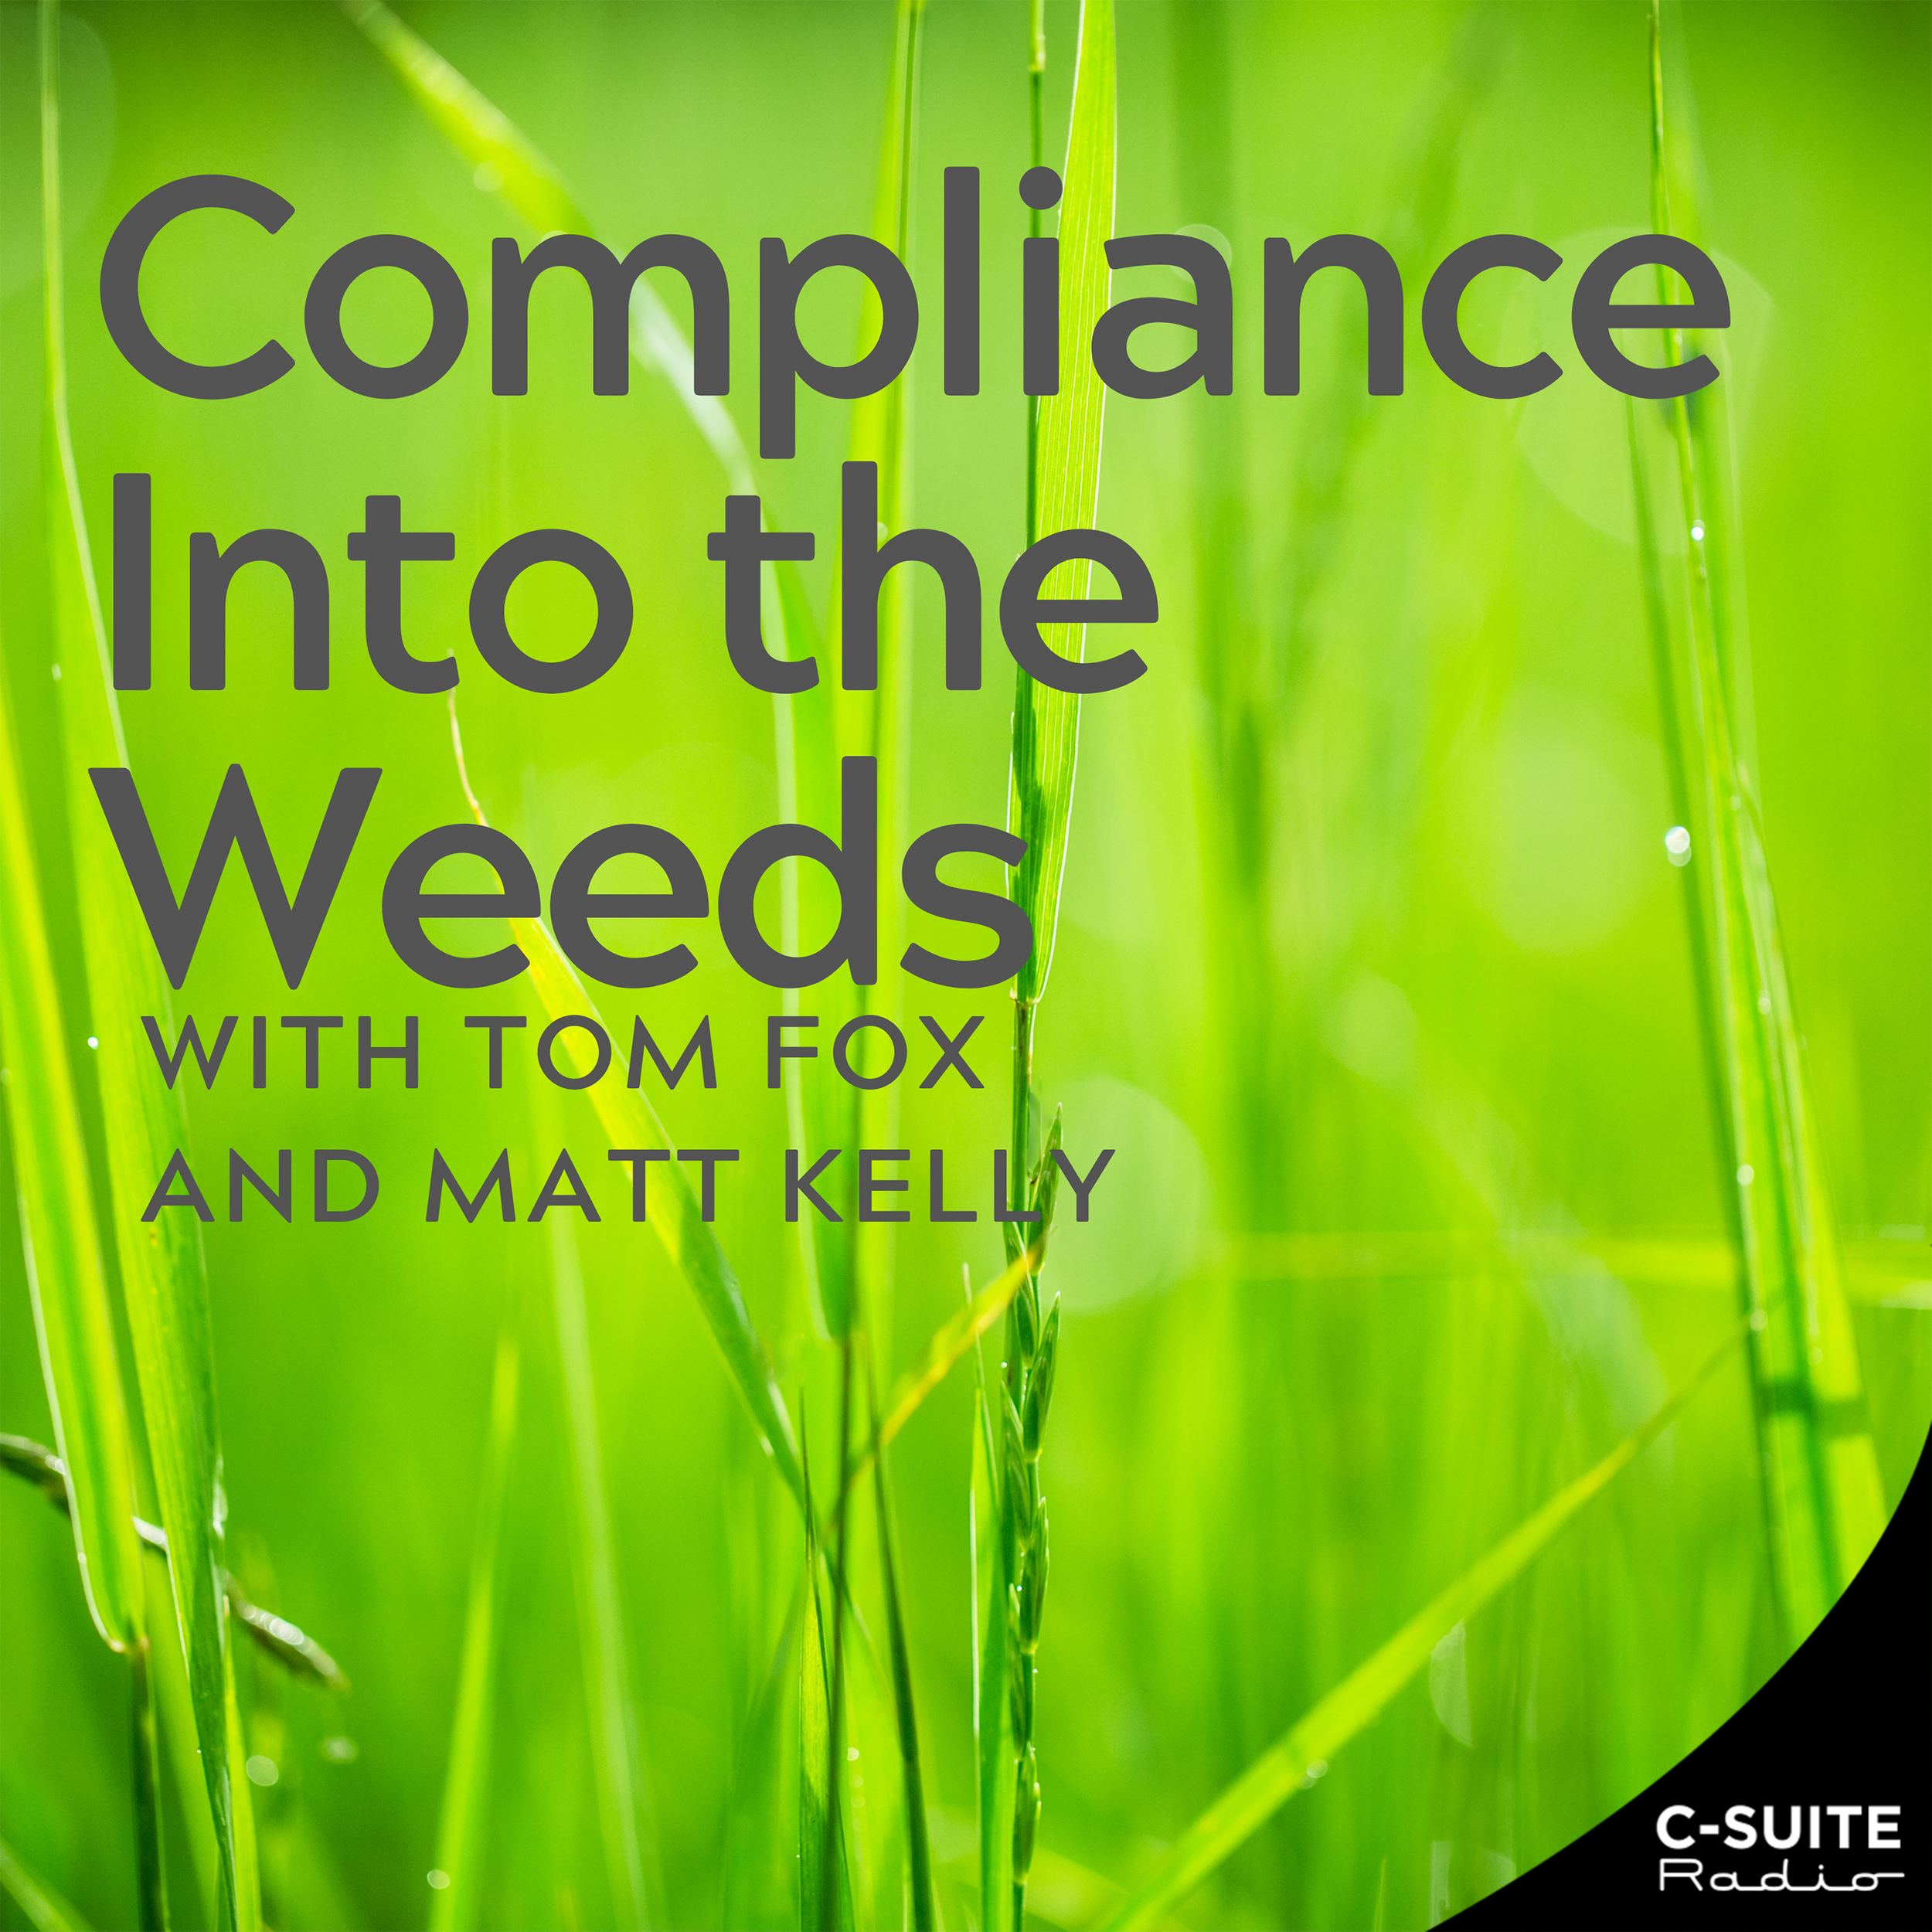 Compliance into the Weeds